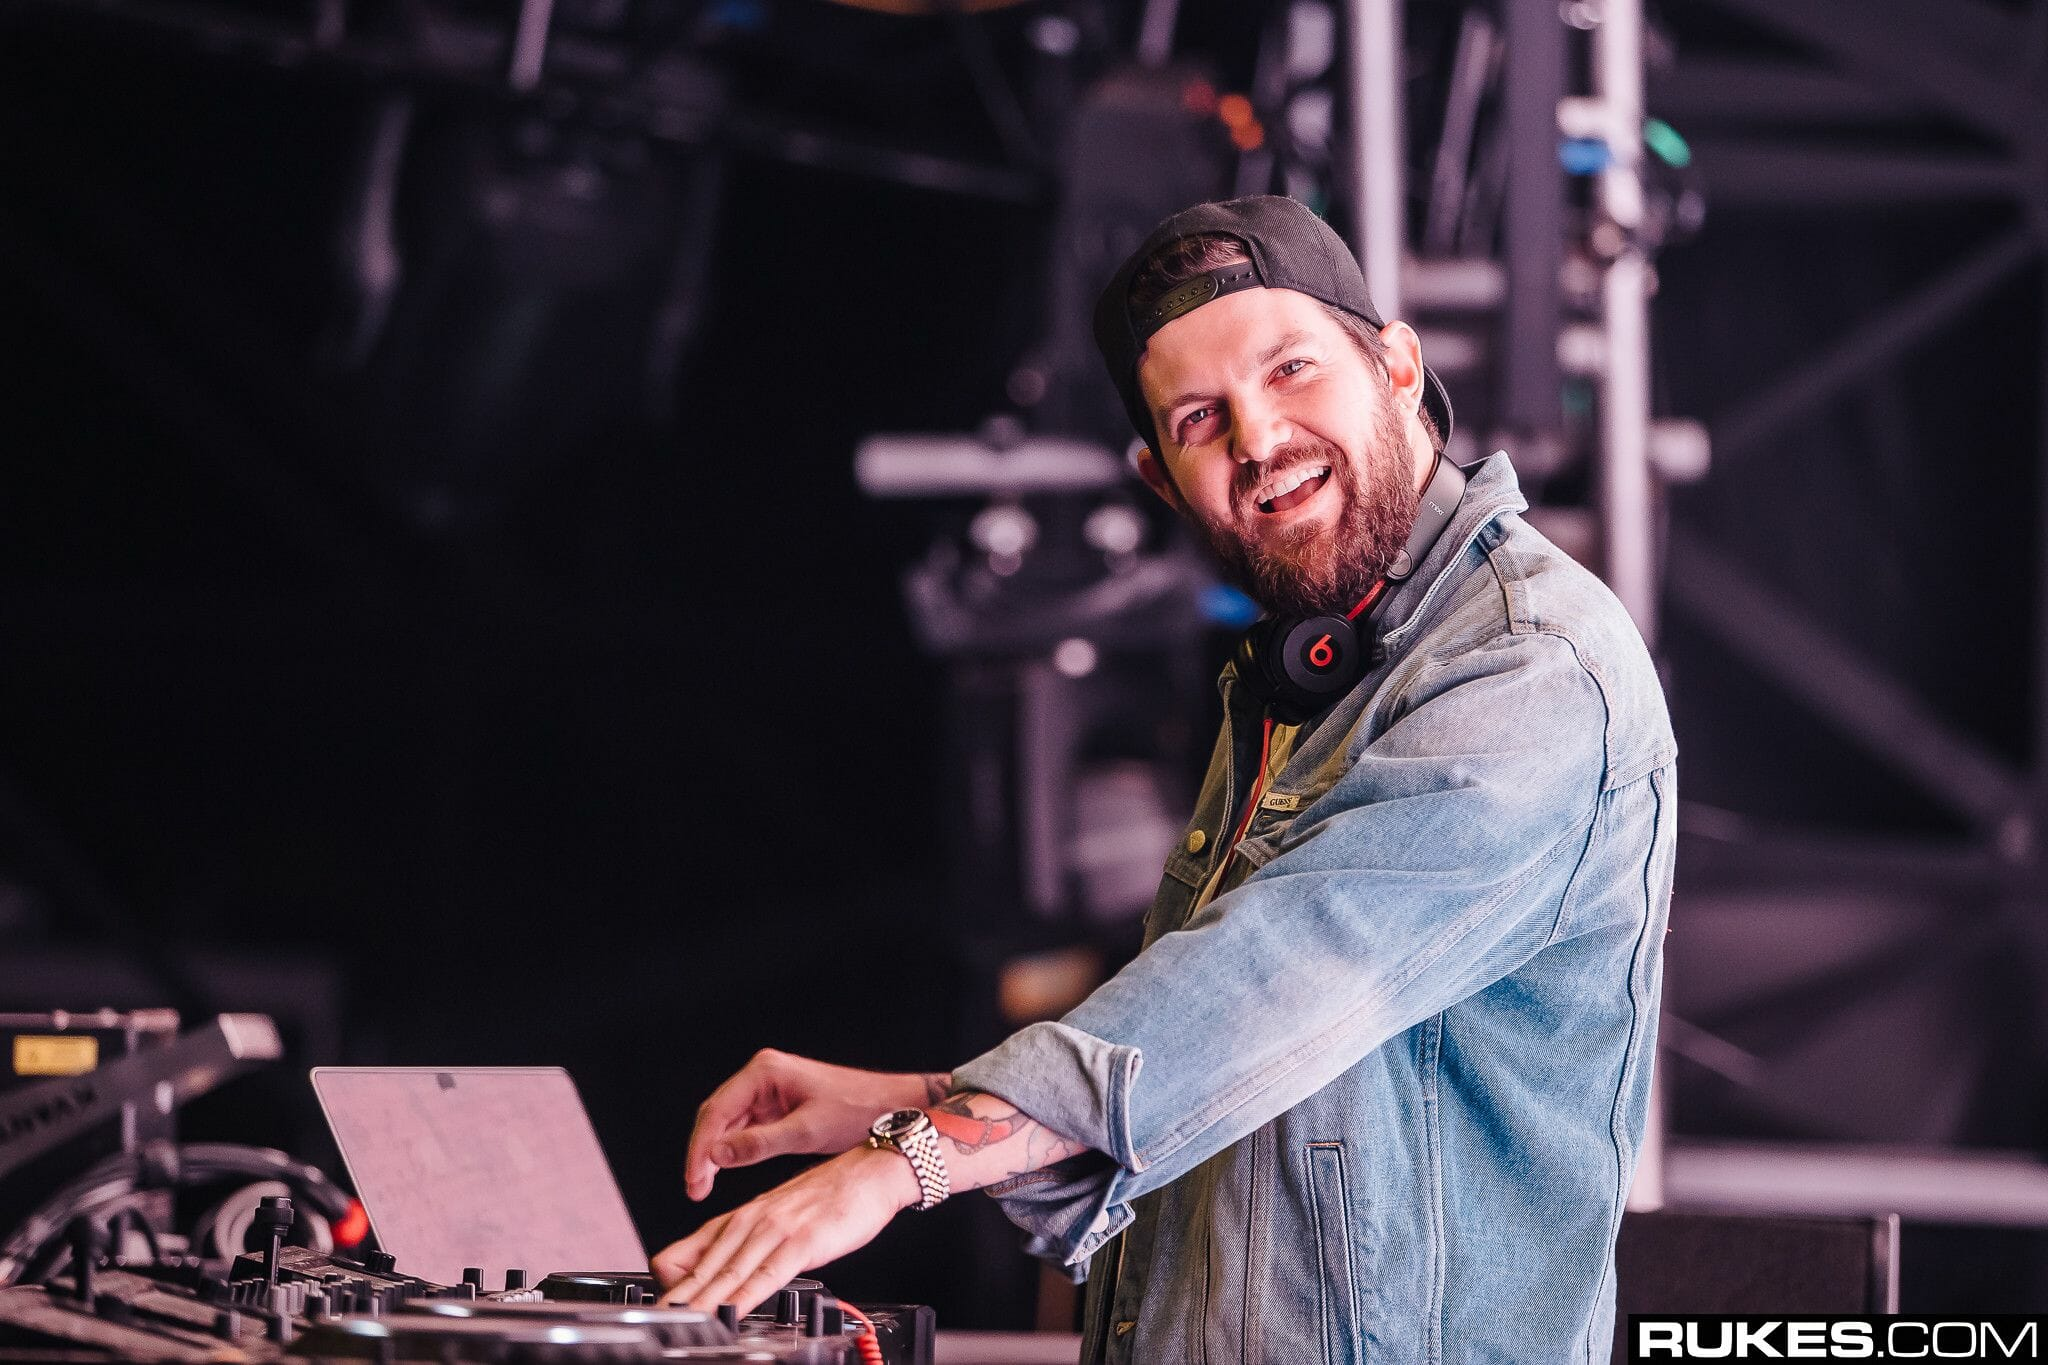 Good Morning Mix: Dillon Francis leans into house stylings for 'Tomorrowland Friendship Mix'Dy2Y8W AALAft